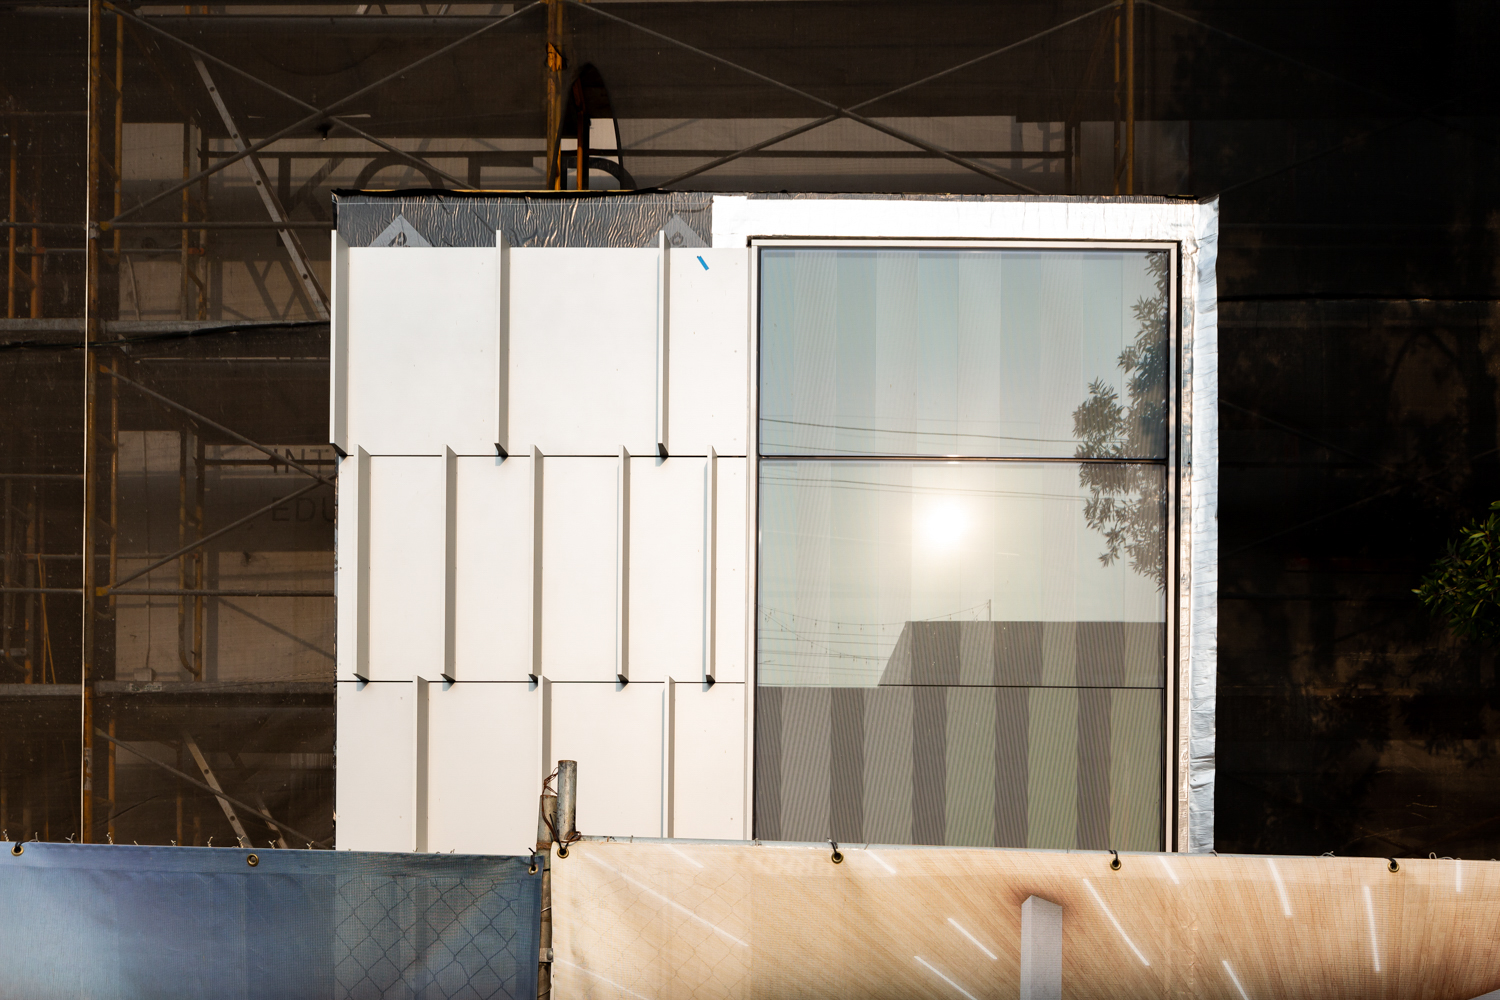 Sample of Facade for the KQED HQ at 2601 Mariposa Street, image by Andrew Campbell Nelson